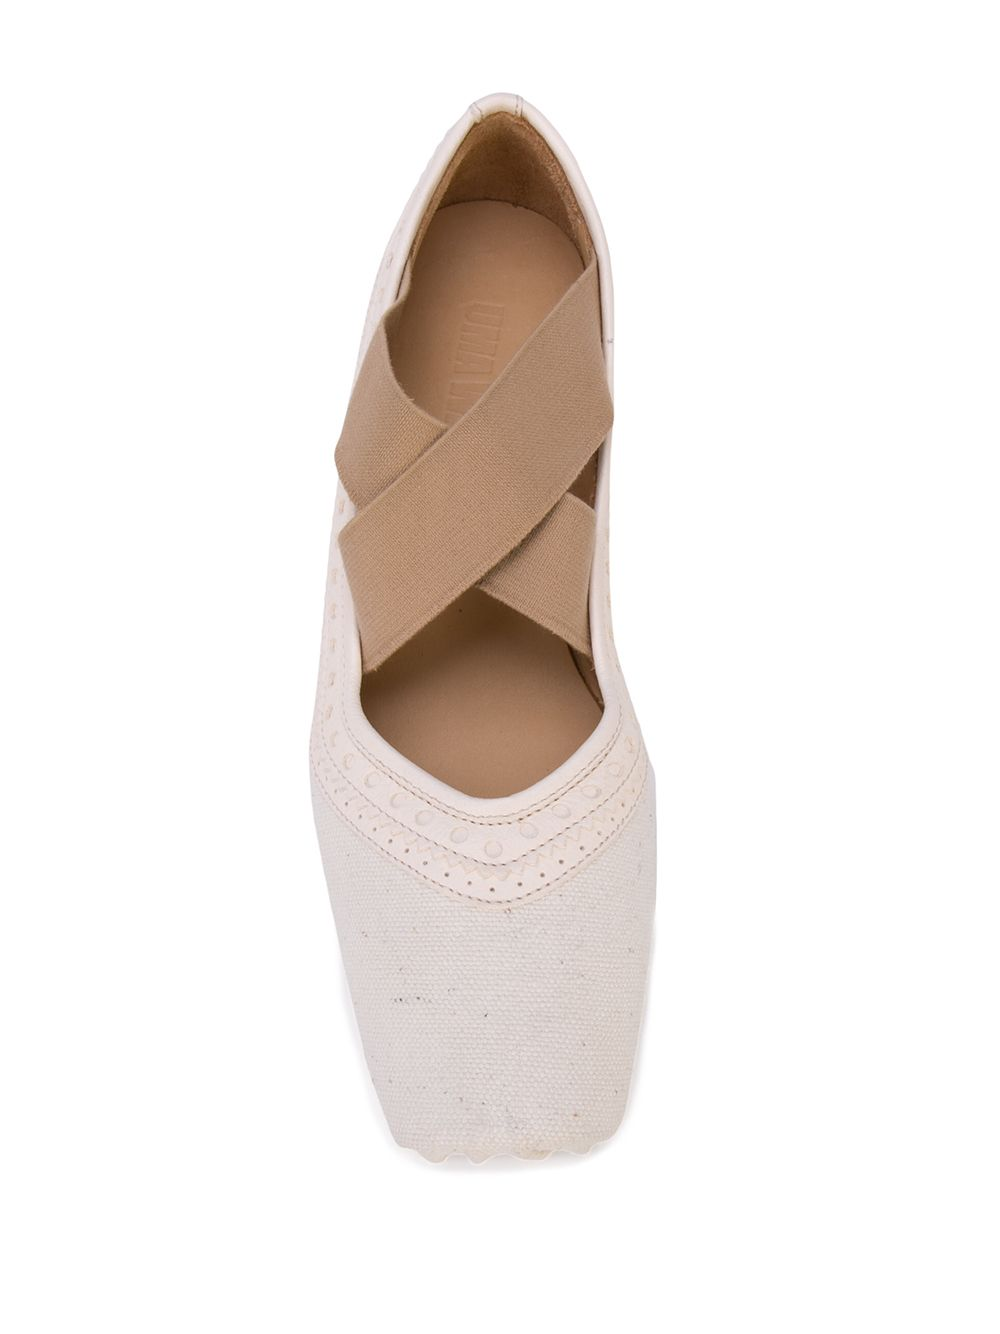 UMA WANG WOMEN BALLERINA SHOES